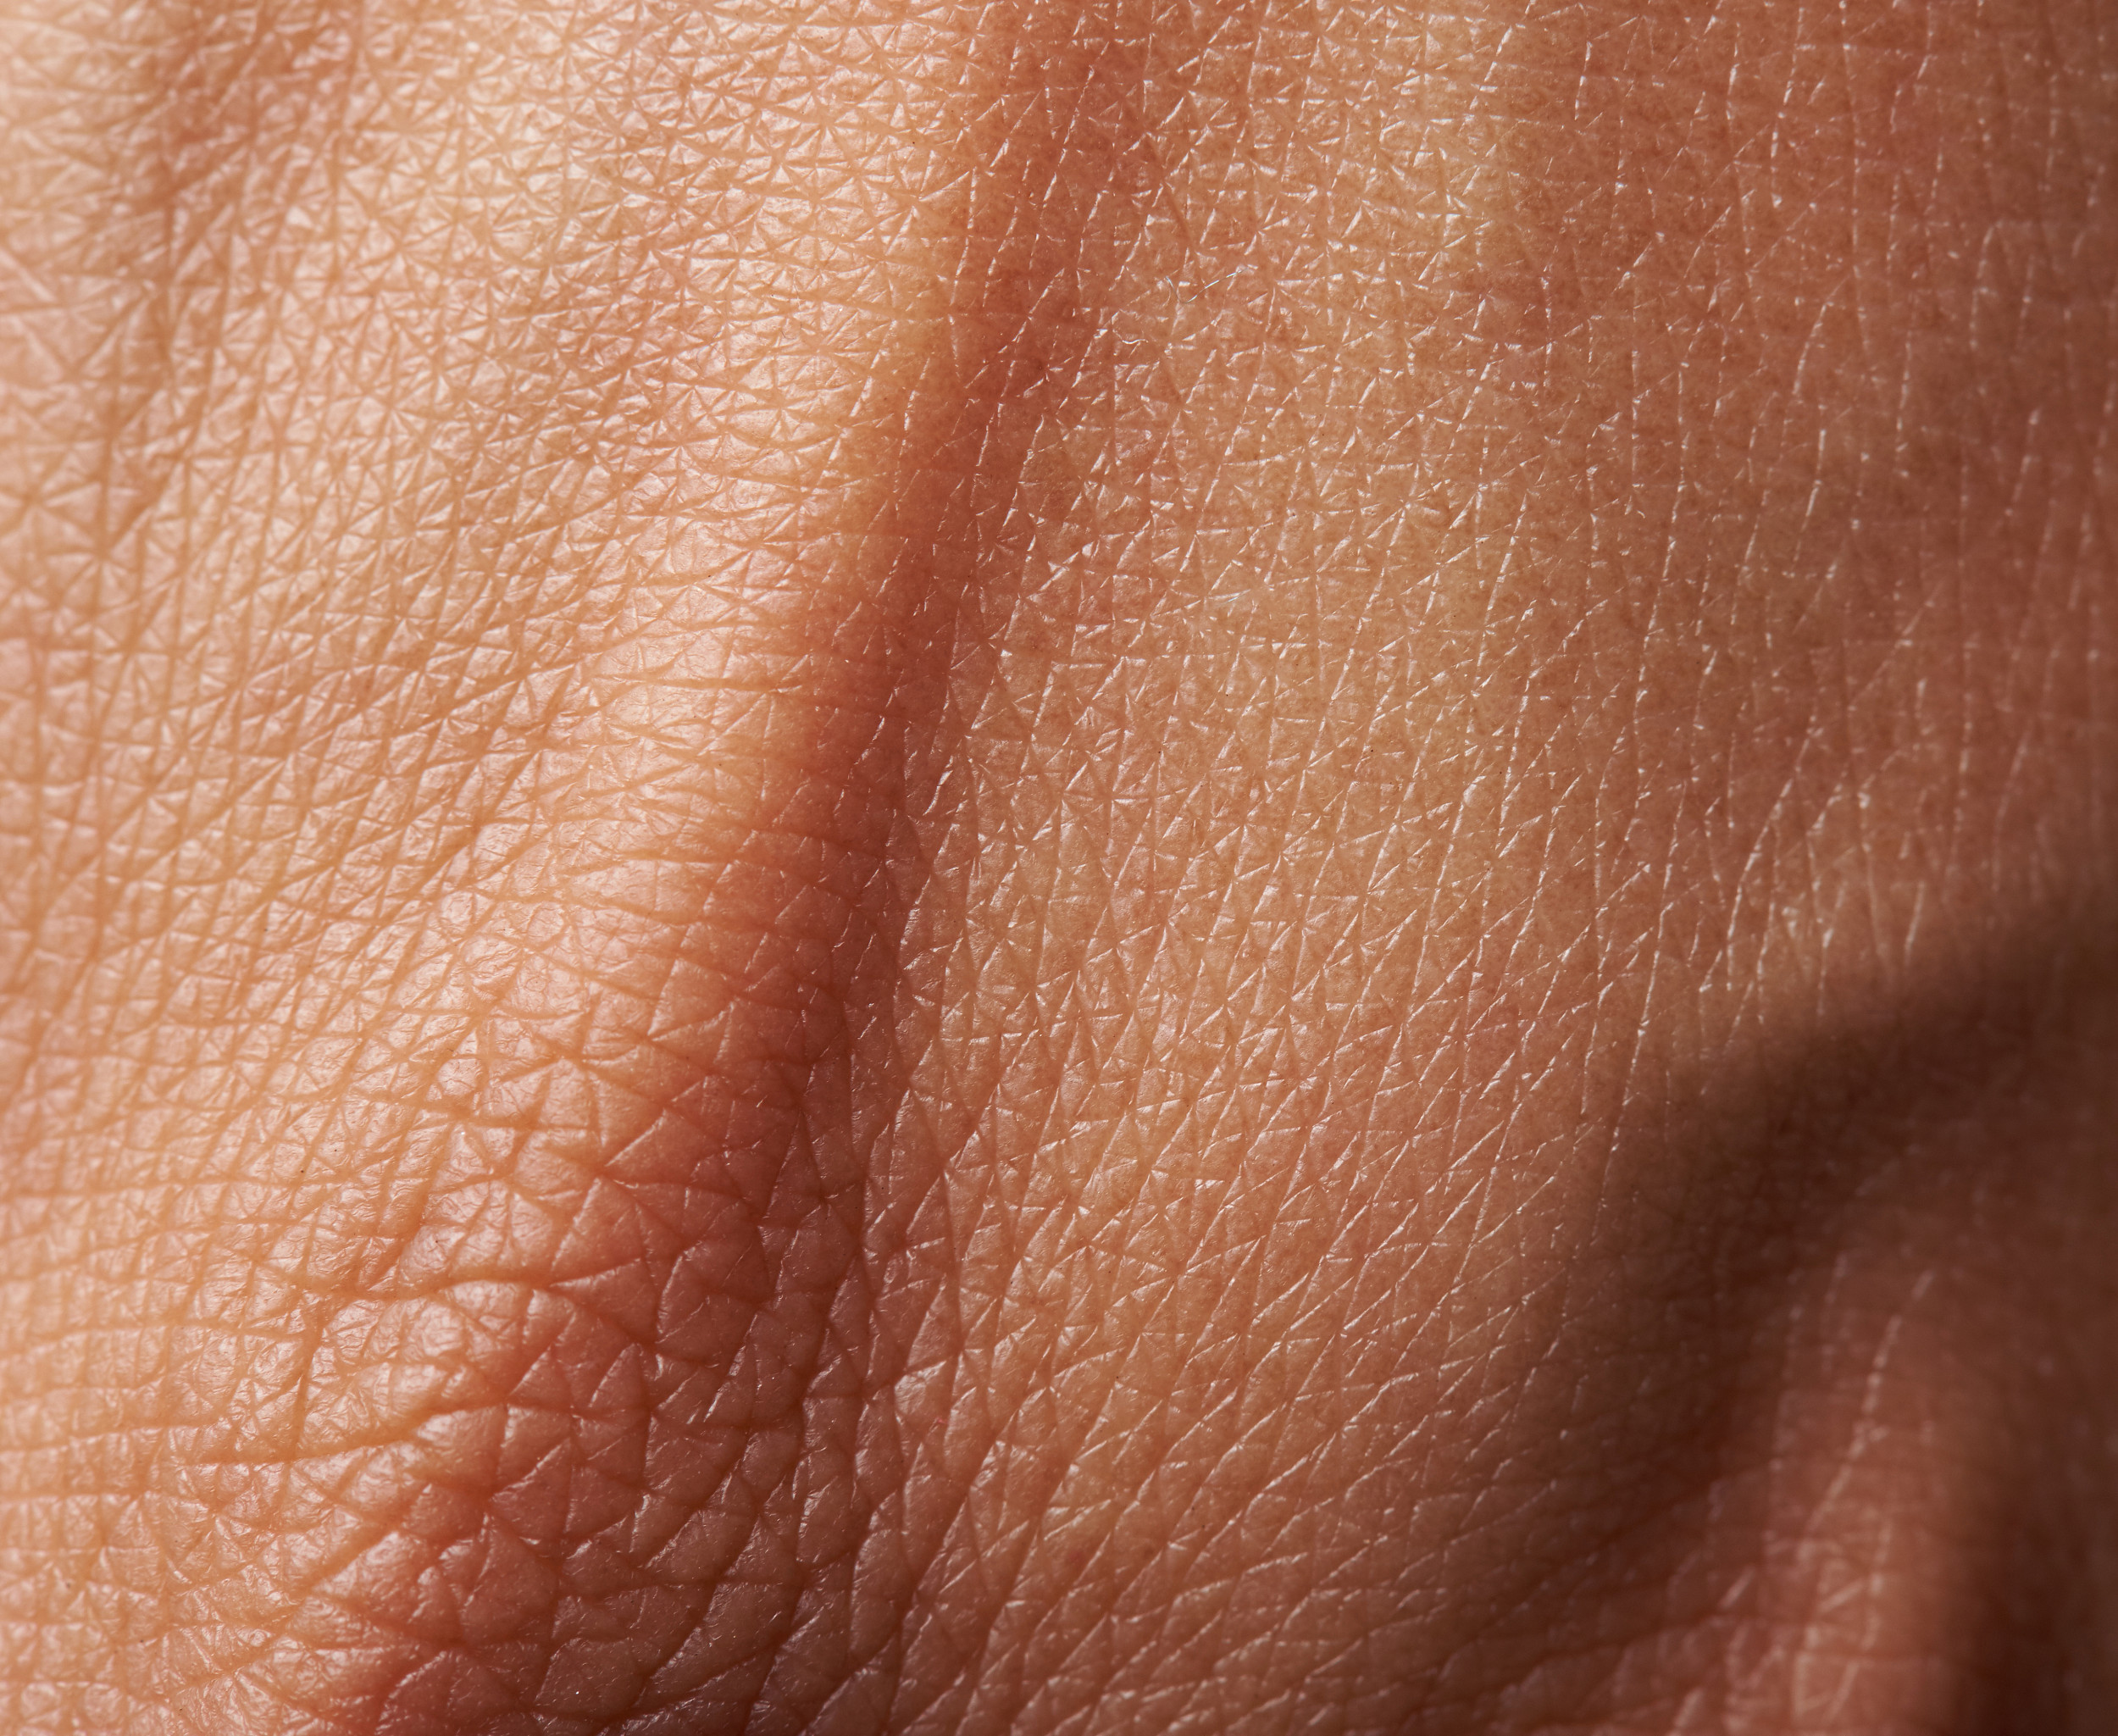 3D-printed Living Skin With Blood Vessels Created by Scientists